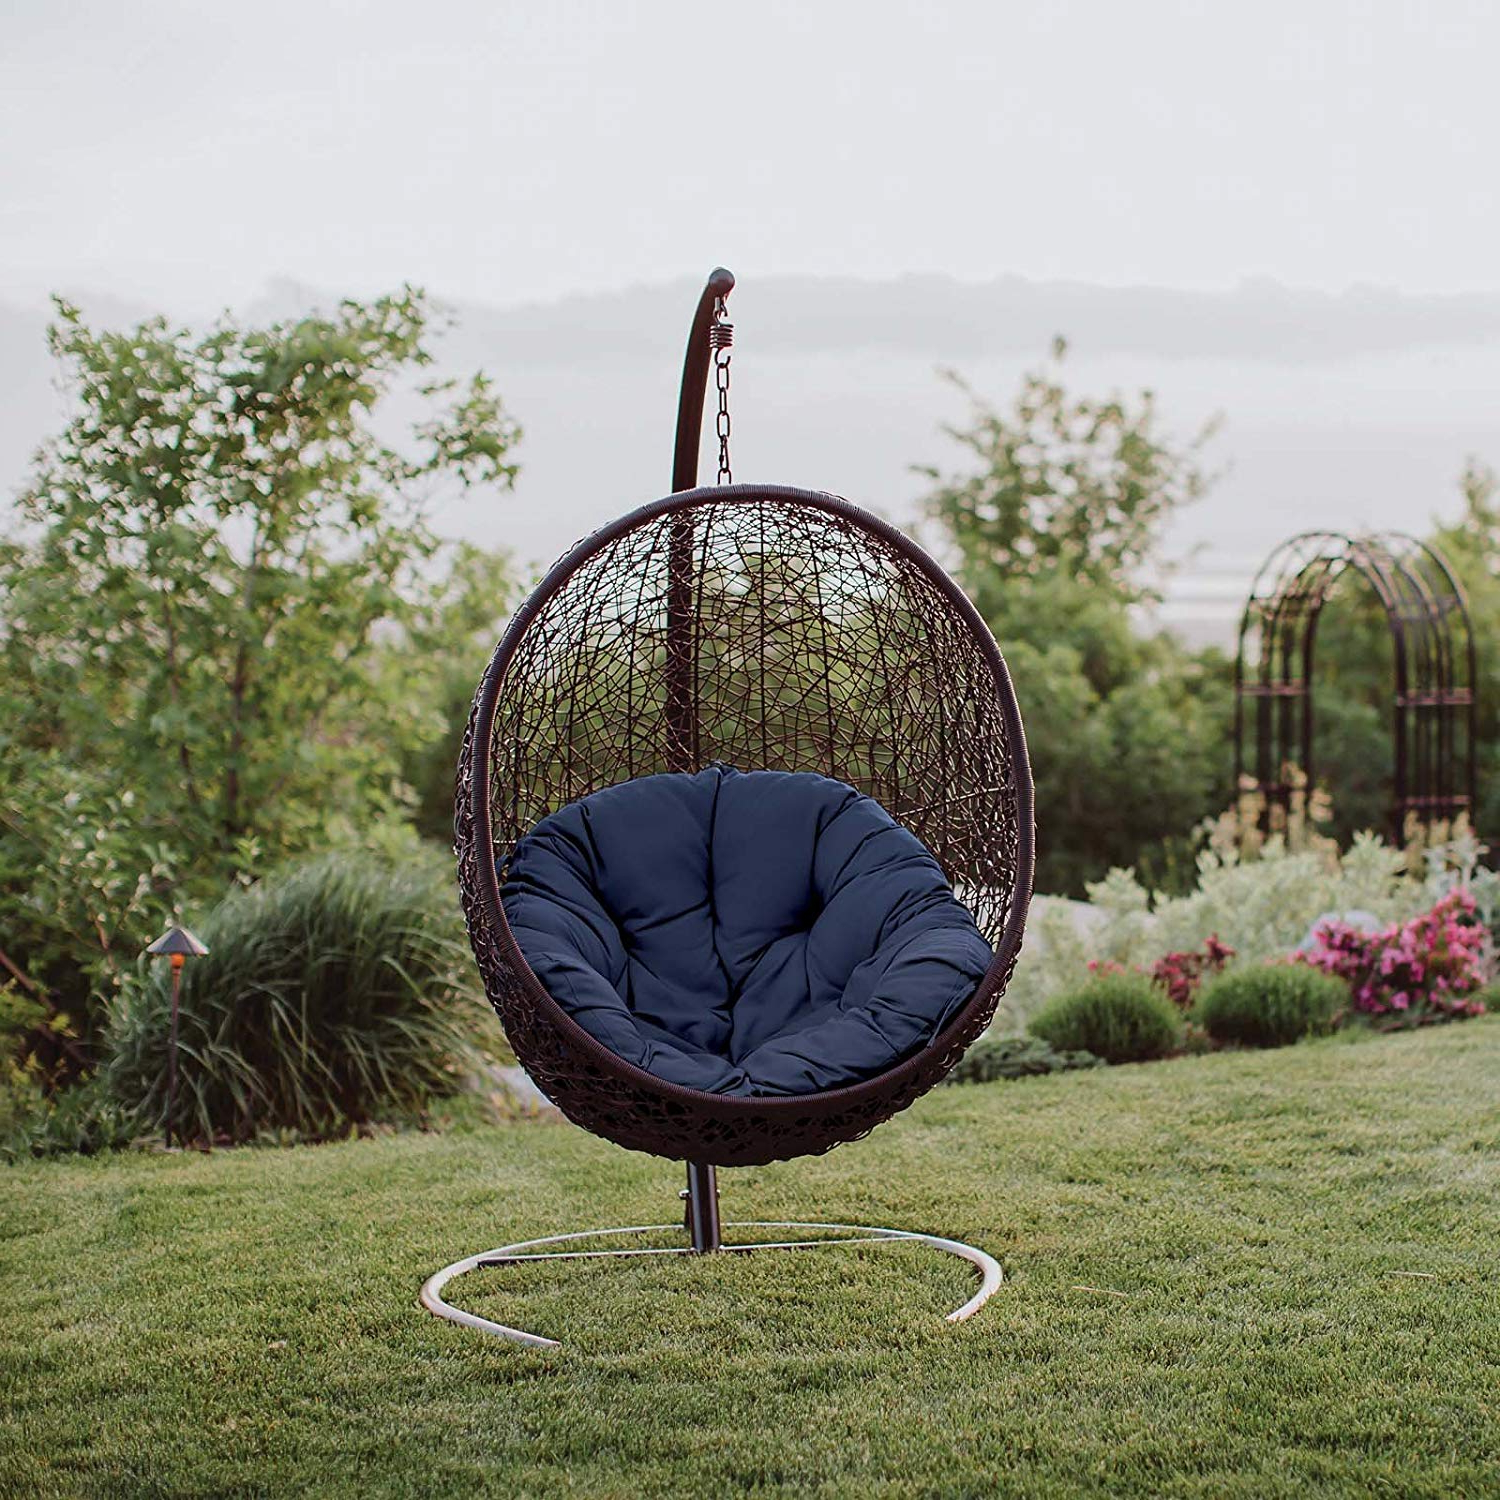 Most Up To Date Outdoor Wicker Plastic Tear Porch Swings With Stand Throughout 10 Best Egg Chairs Of 2020 (review & Guide) – Thebeastreviews (View 10 of 30)